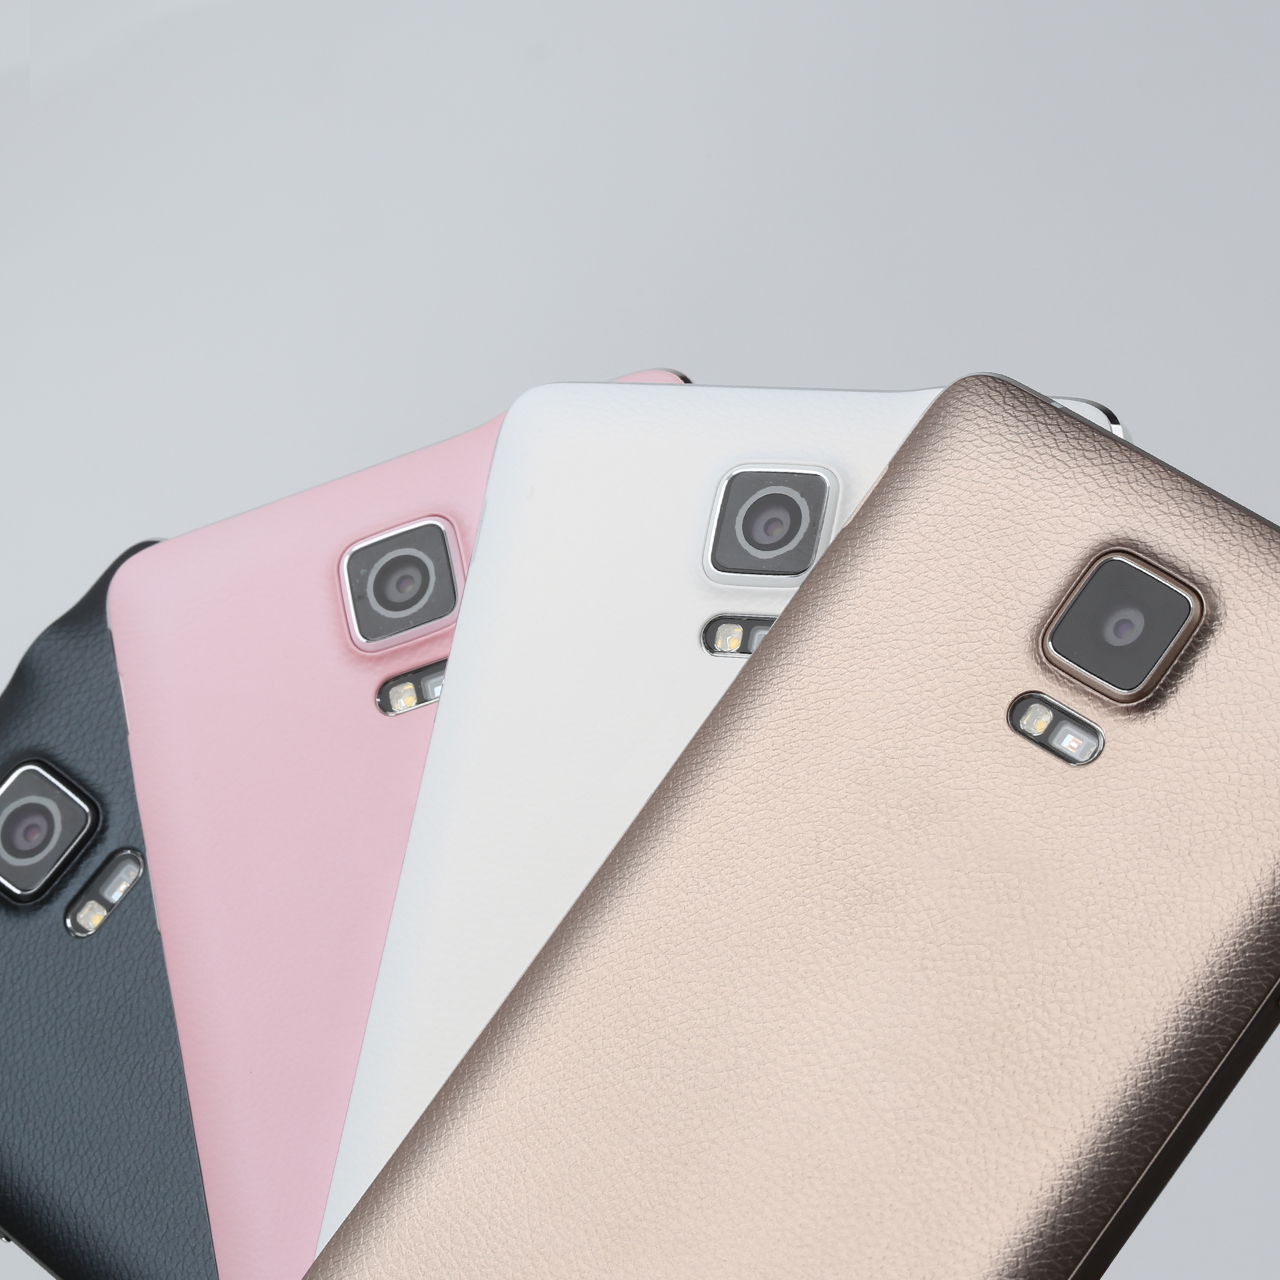 samsung-galaxy-note4-all-color-hands-on-pic8.jpg